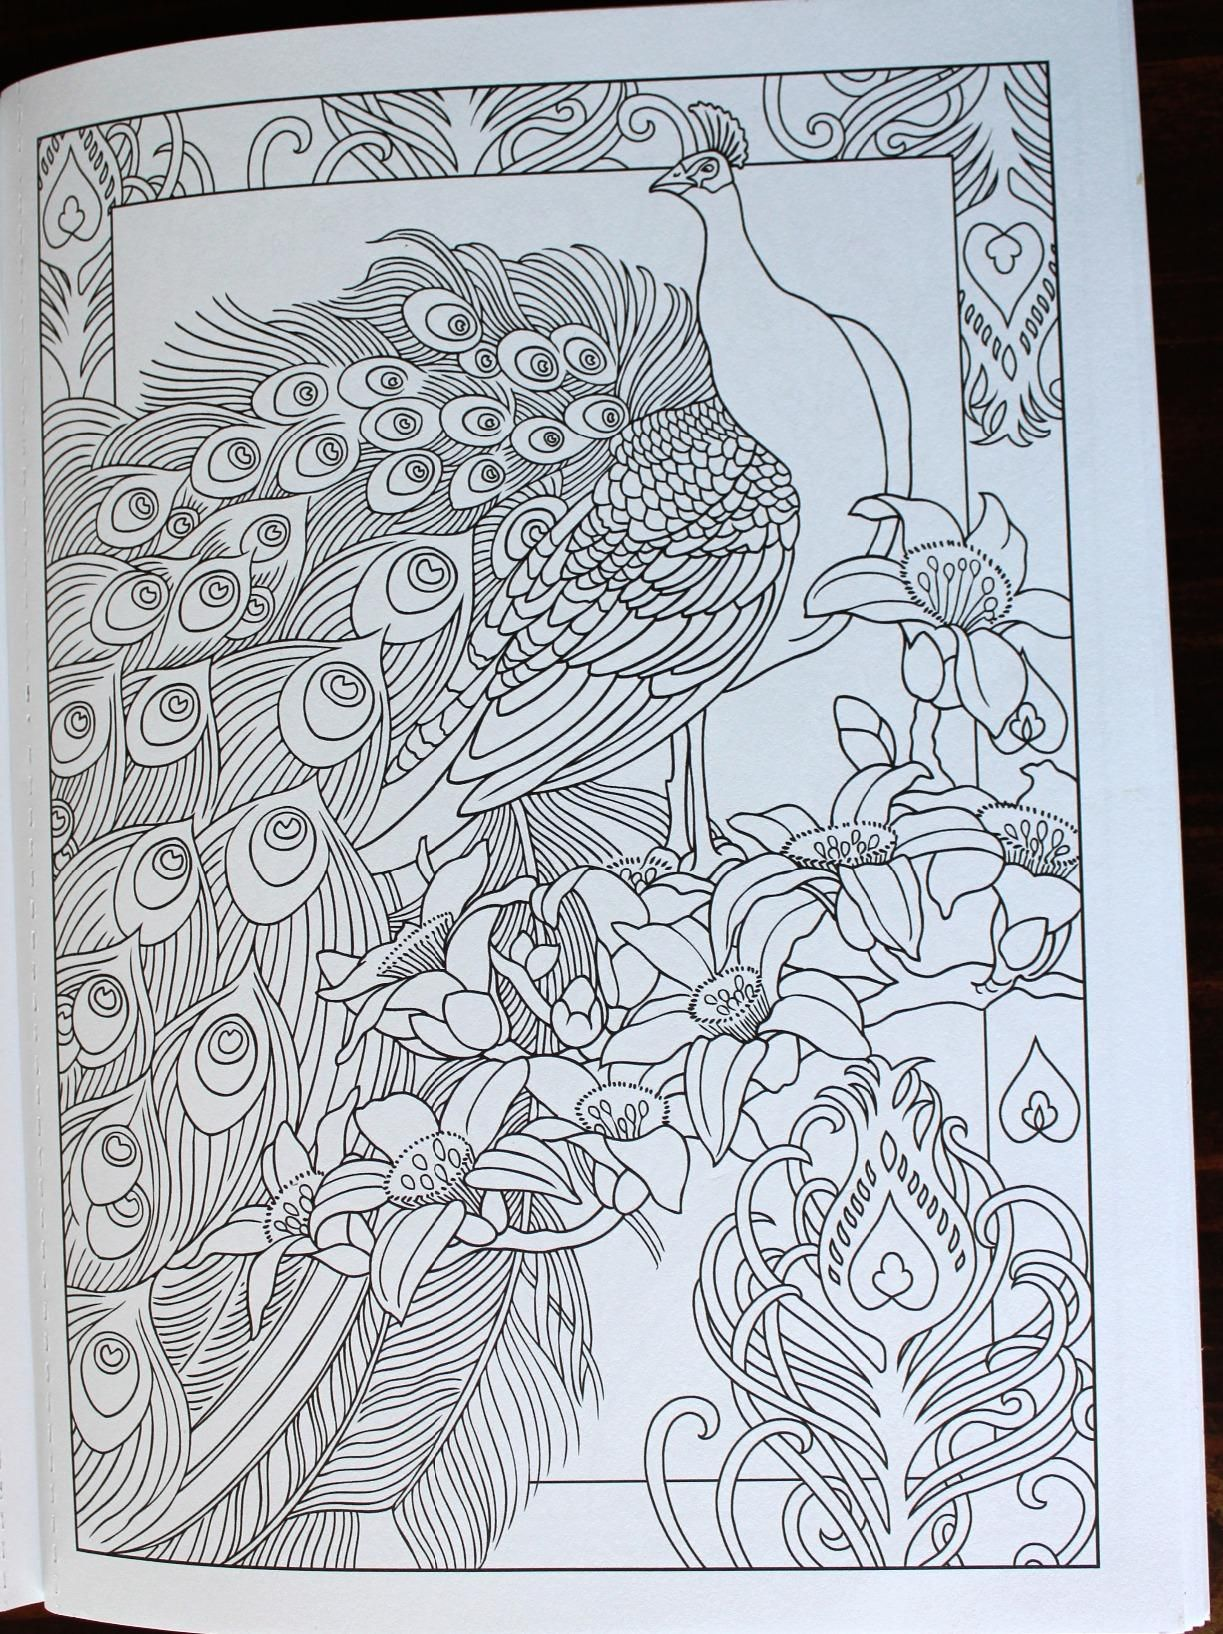 Creative Haven Peacock Designs Coloring Book Books Marty Noble 9780486779966 Amazon